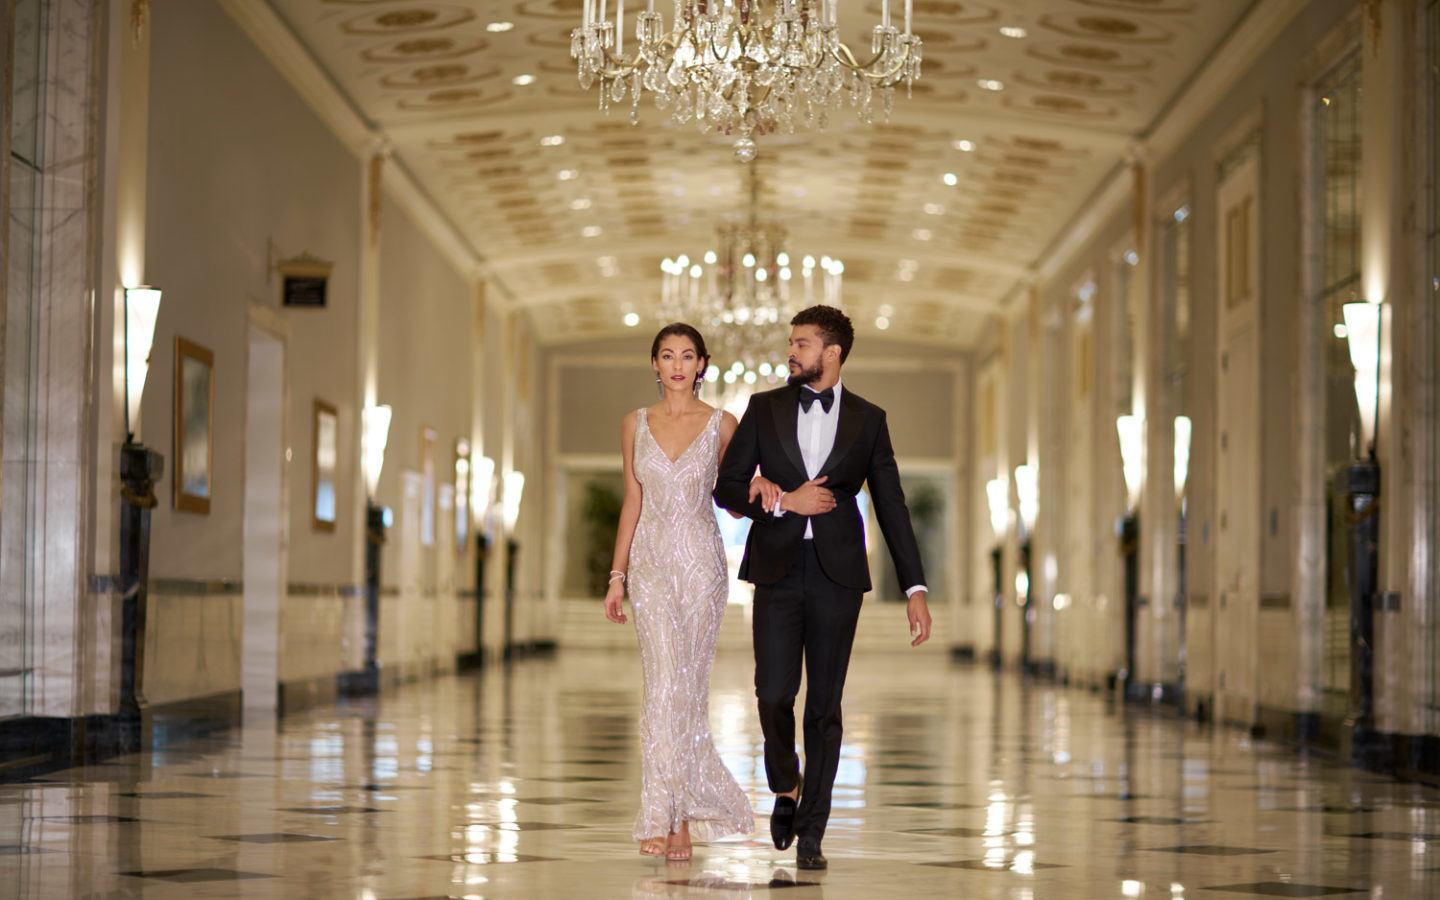 man in black suit and woman in white wedding dress walking on hallway